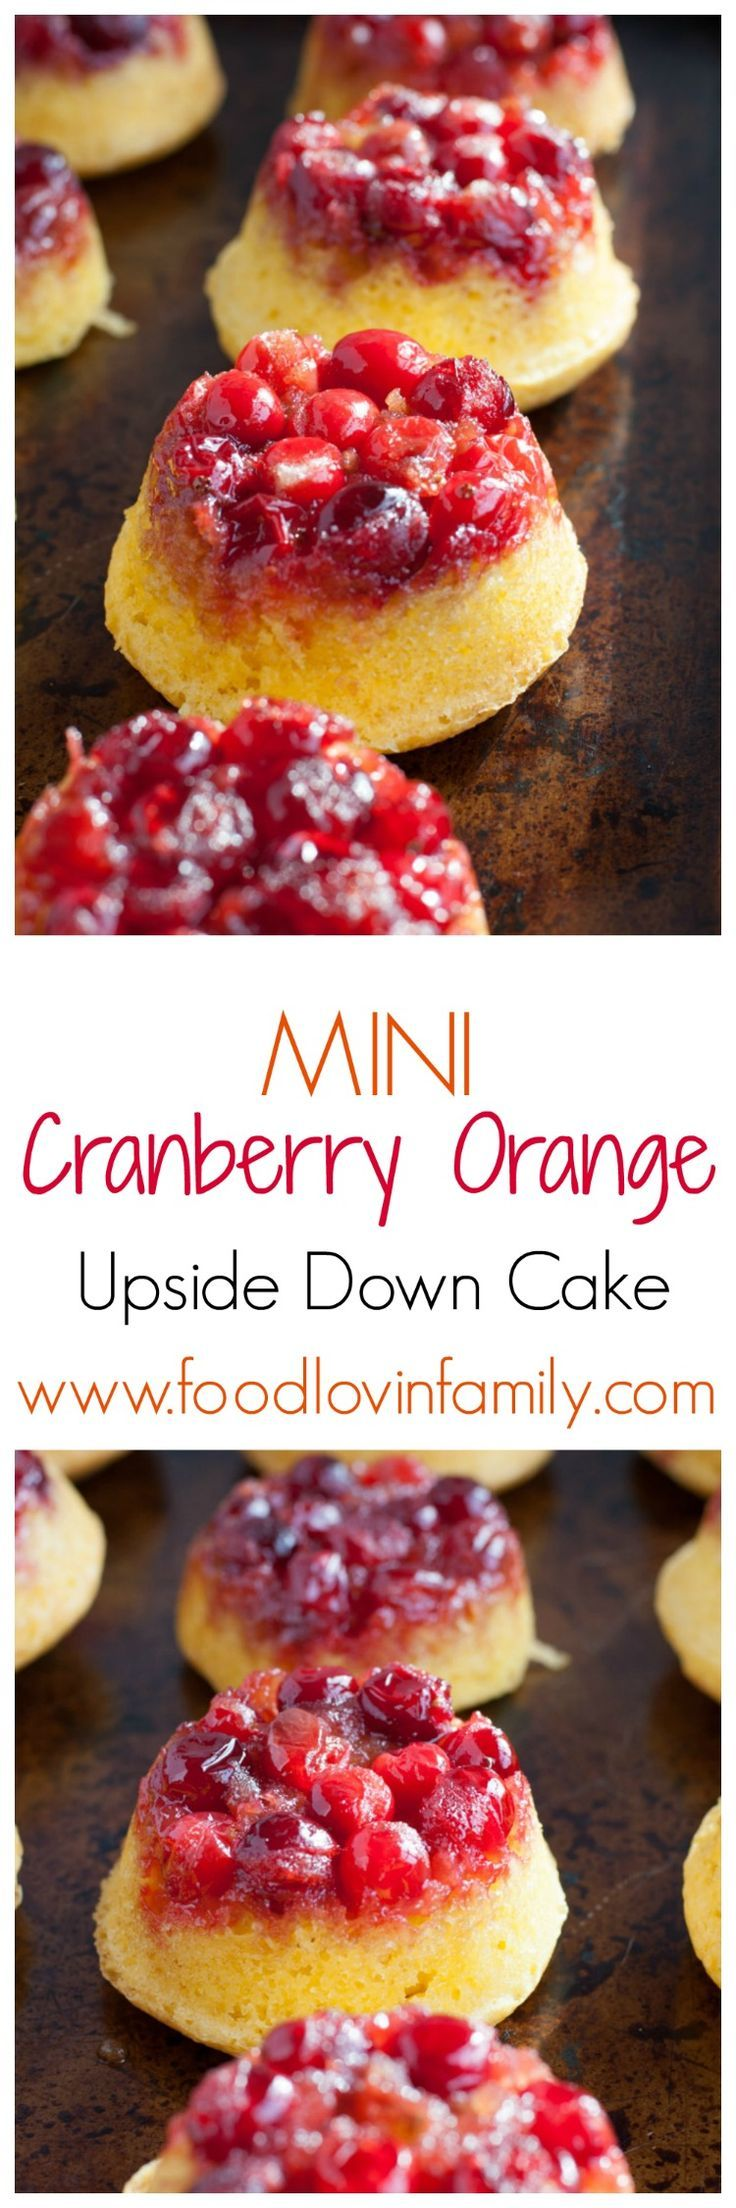 Mini cranberry orange upside down cakes are a great dessert for a party or holiday gathering. Made with fresh or frozen cranberries, brown sugar, butter and an orange cake. | http://www.foodlovinfamily.com/mini-cranberry-orange-upside-down-cakes/